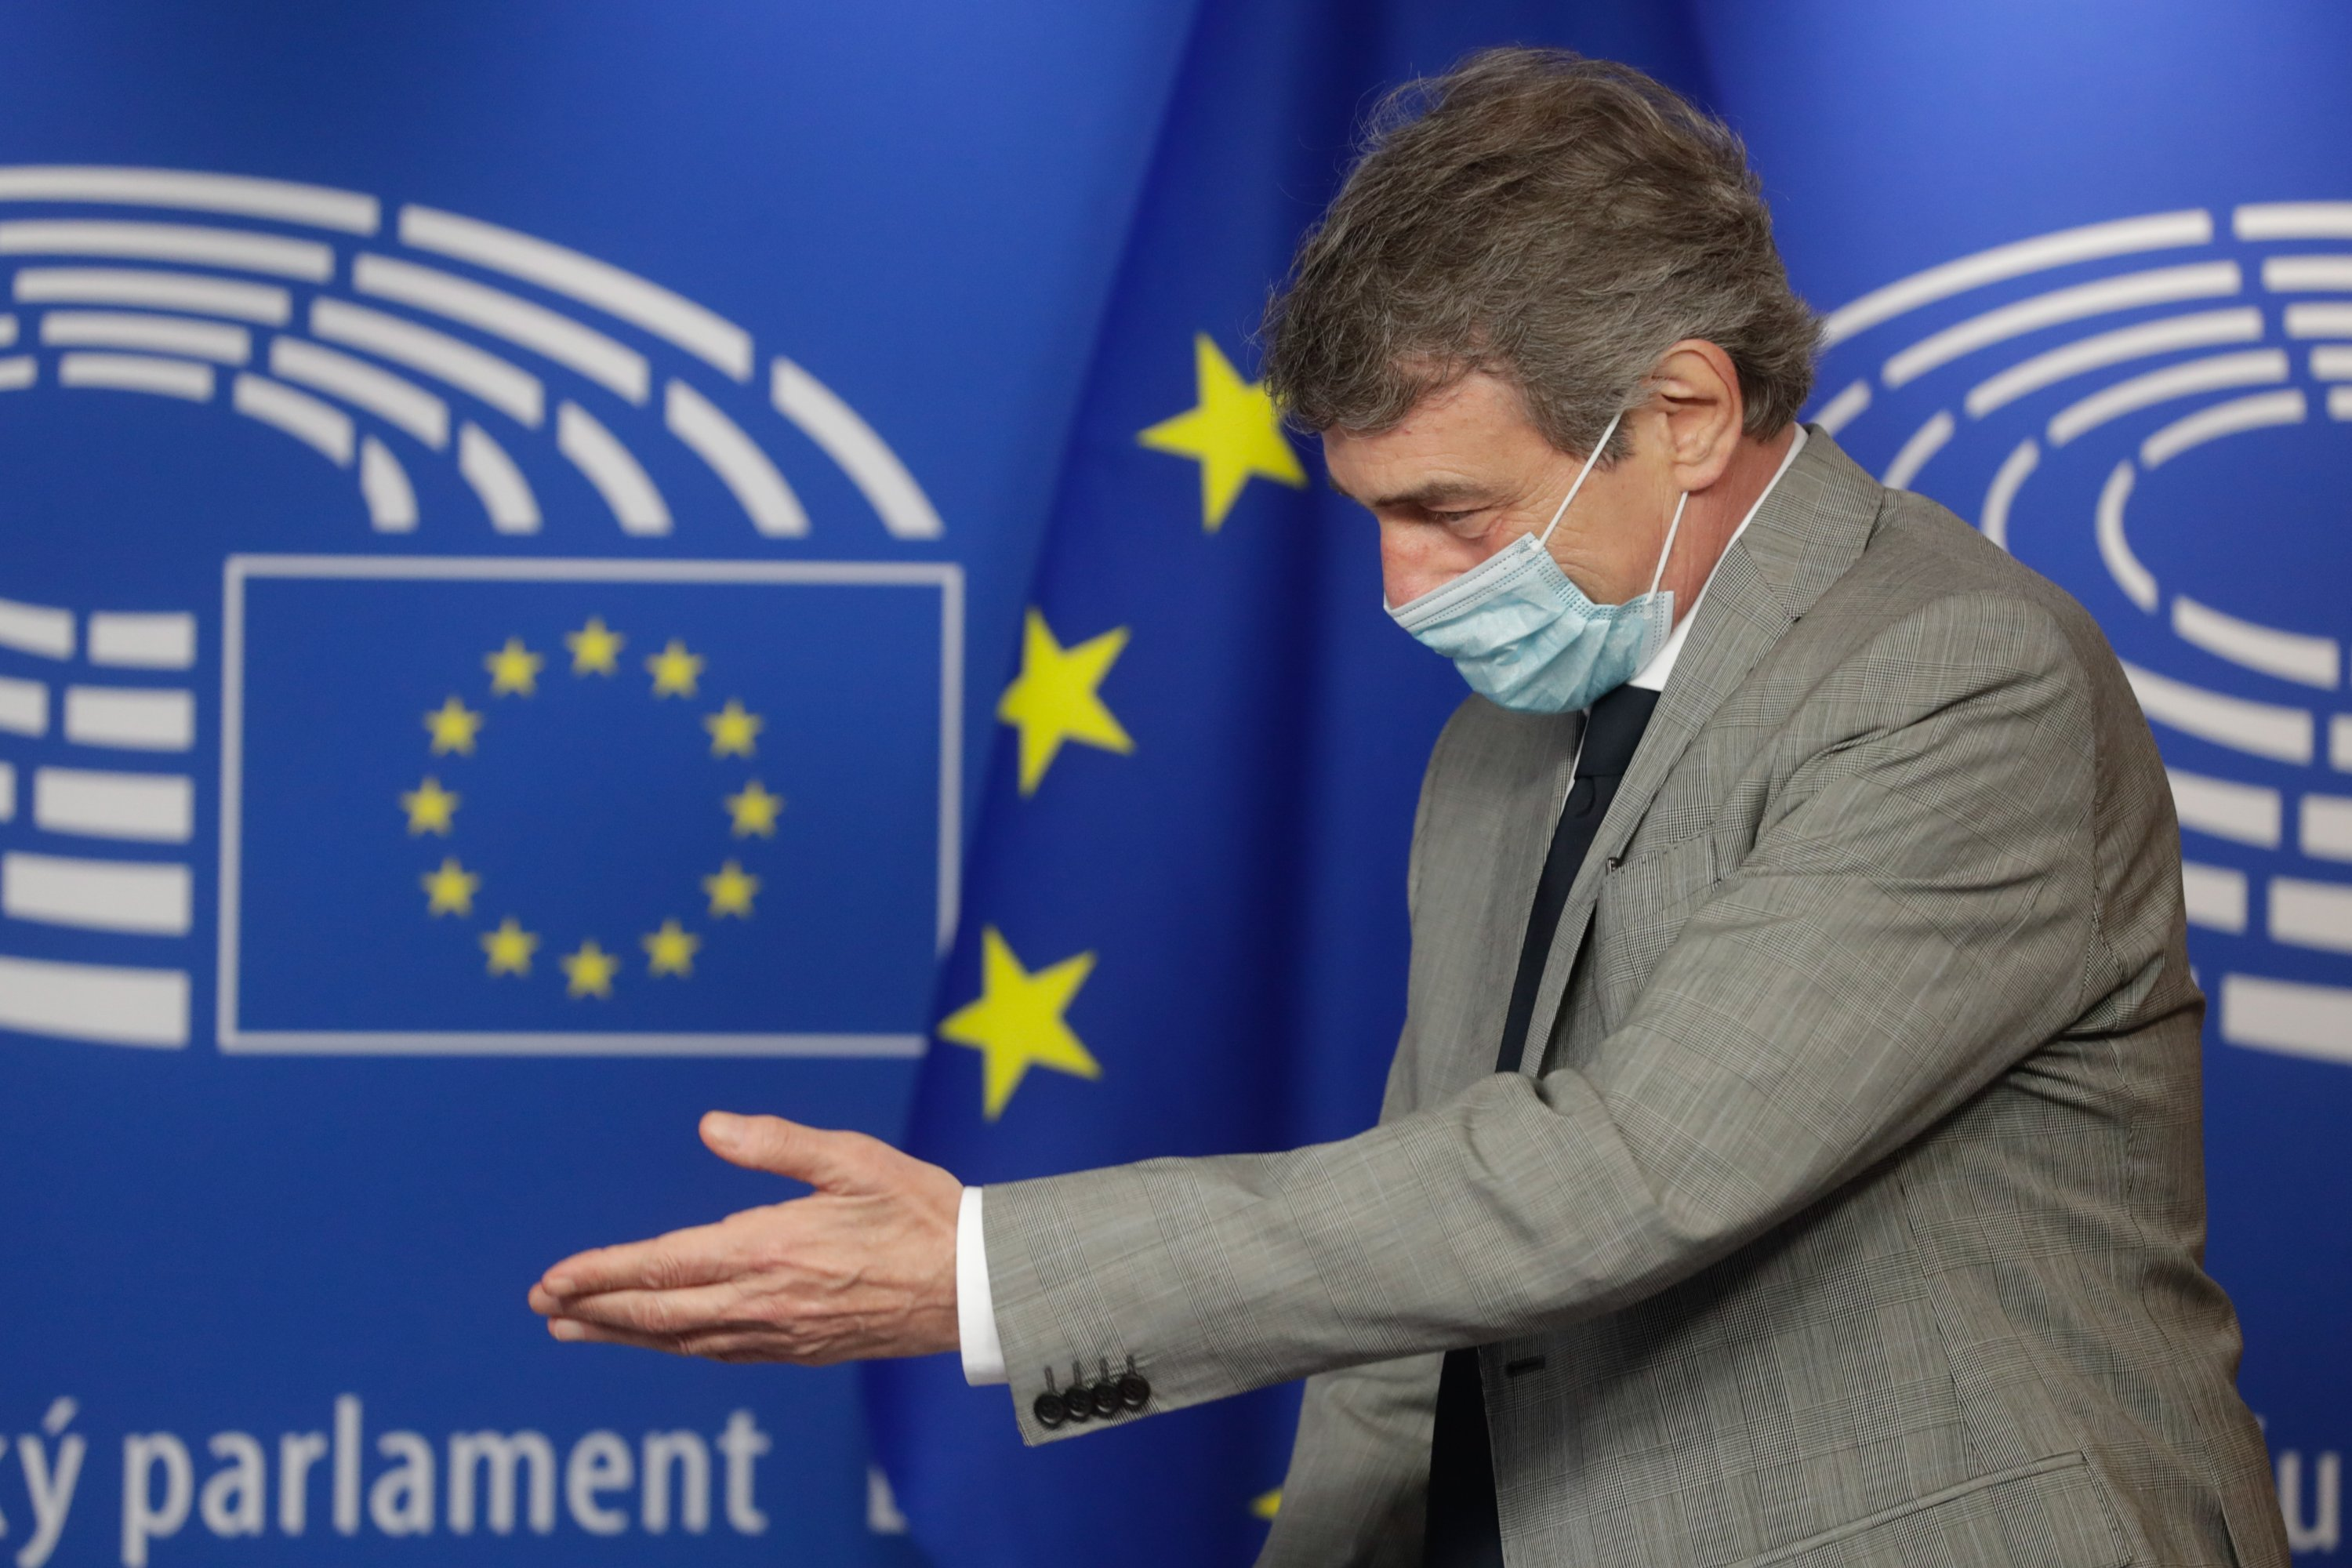 European Parliament President David Sassoli about to sign one COD Lex (European Climate Law) in Brussels, Belgium, June 30, 2021. (EPA Photo)